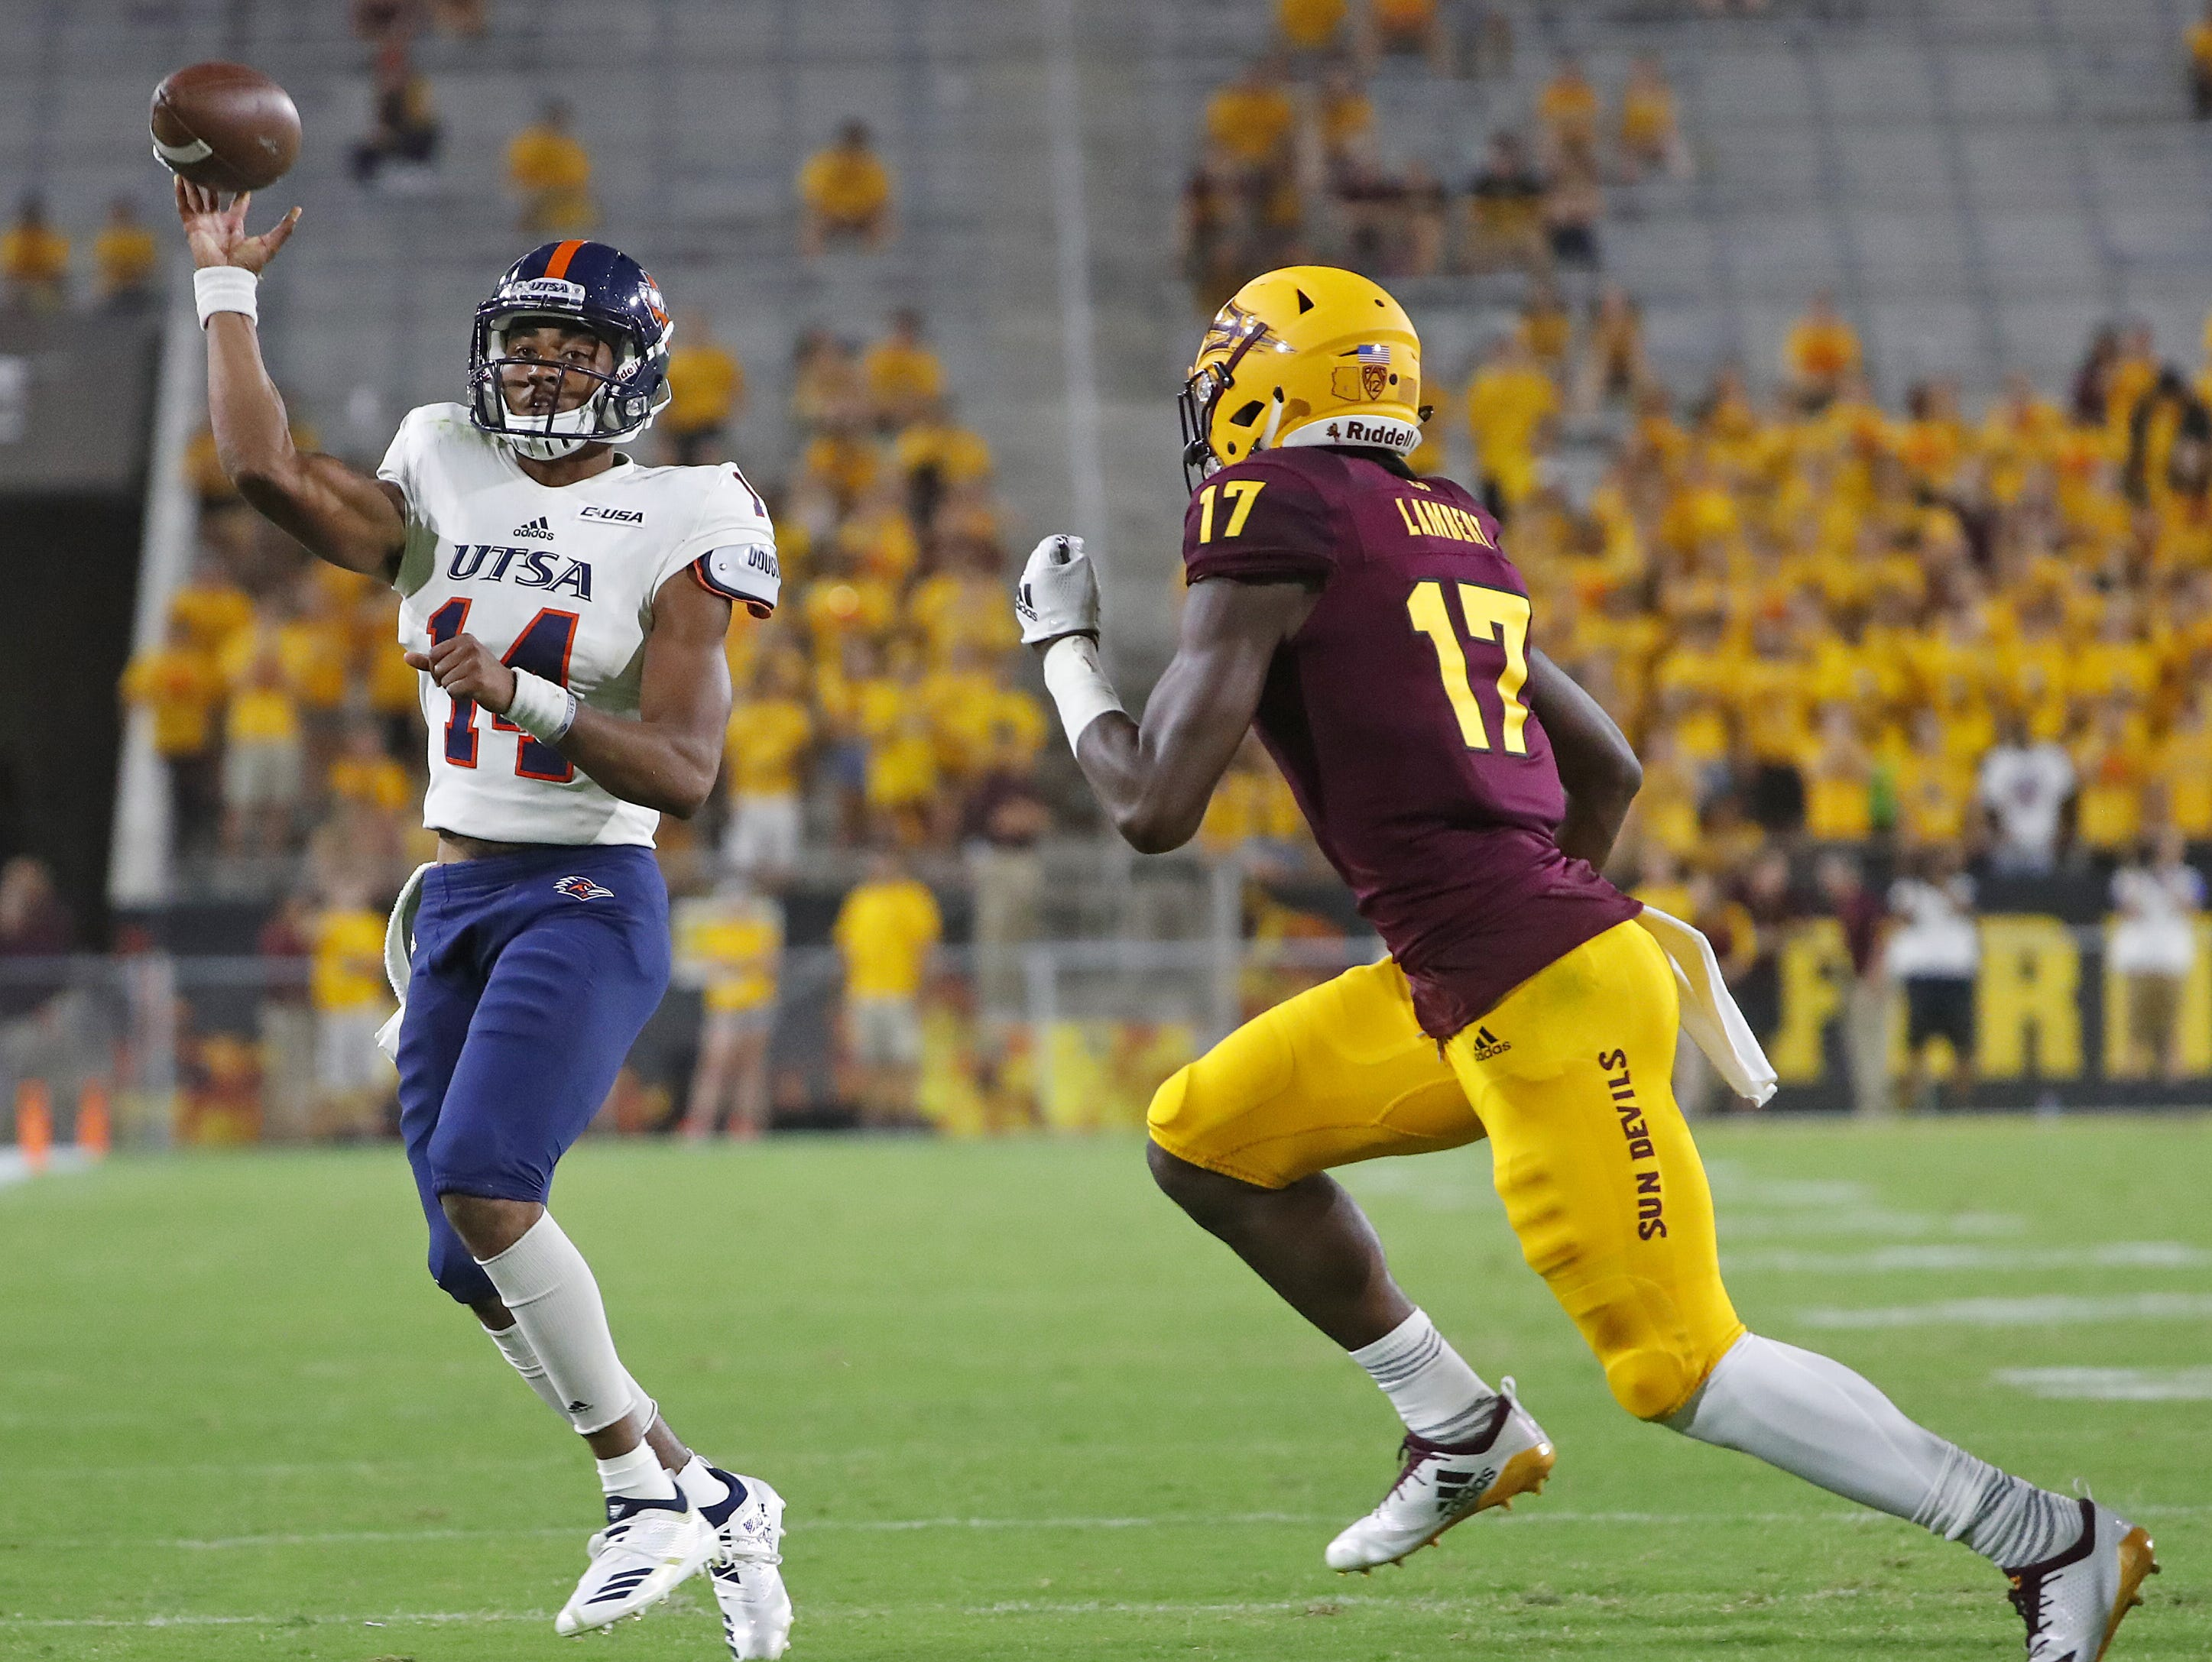 UTSA Roadrunners quarterback Cordale Grundy (14) throws a pass on the run under pressure from \Stanley Lambert (17) during the second half at Sun Devil Stadium in Tempe, Ariz. on Sept. 1, 2018.